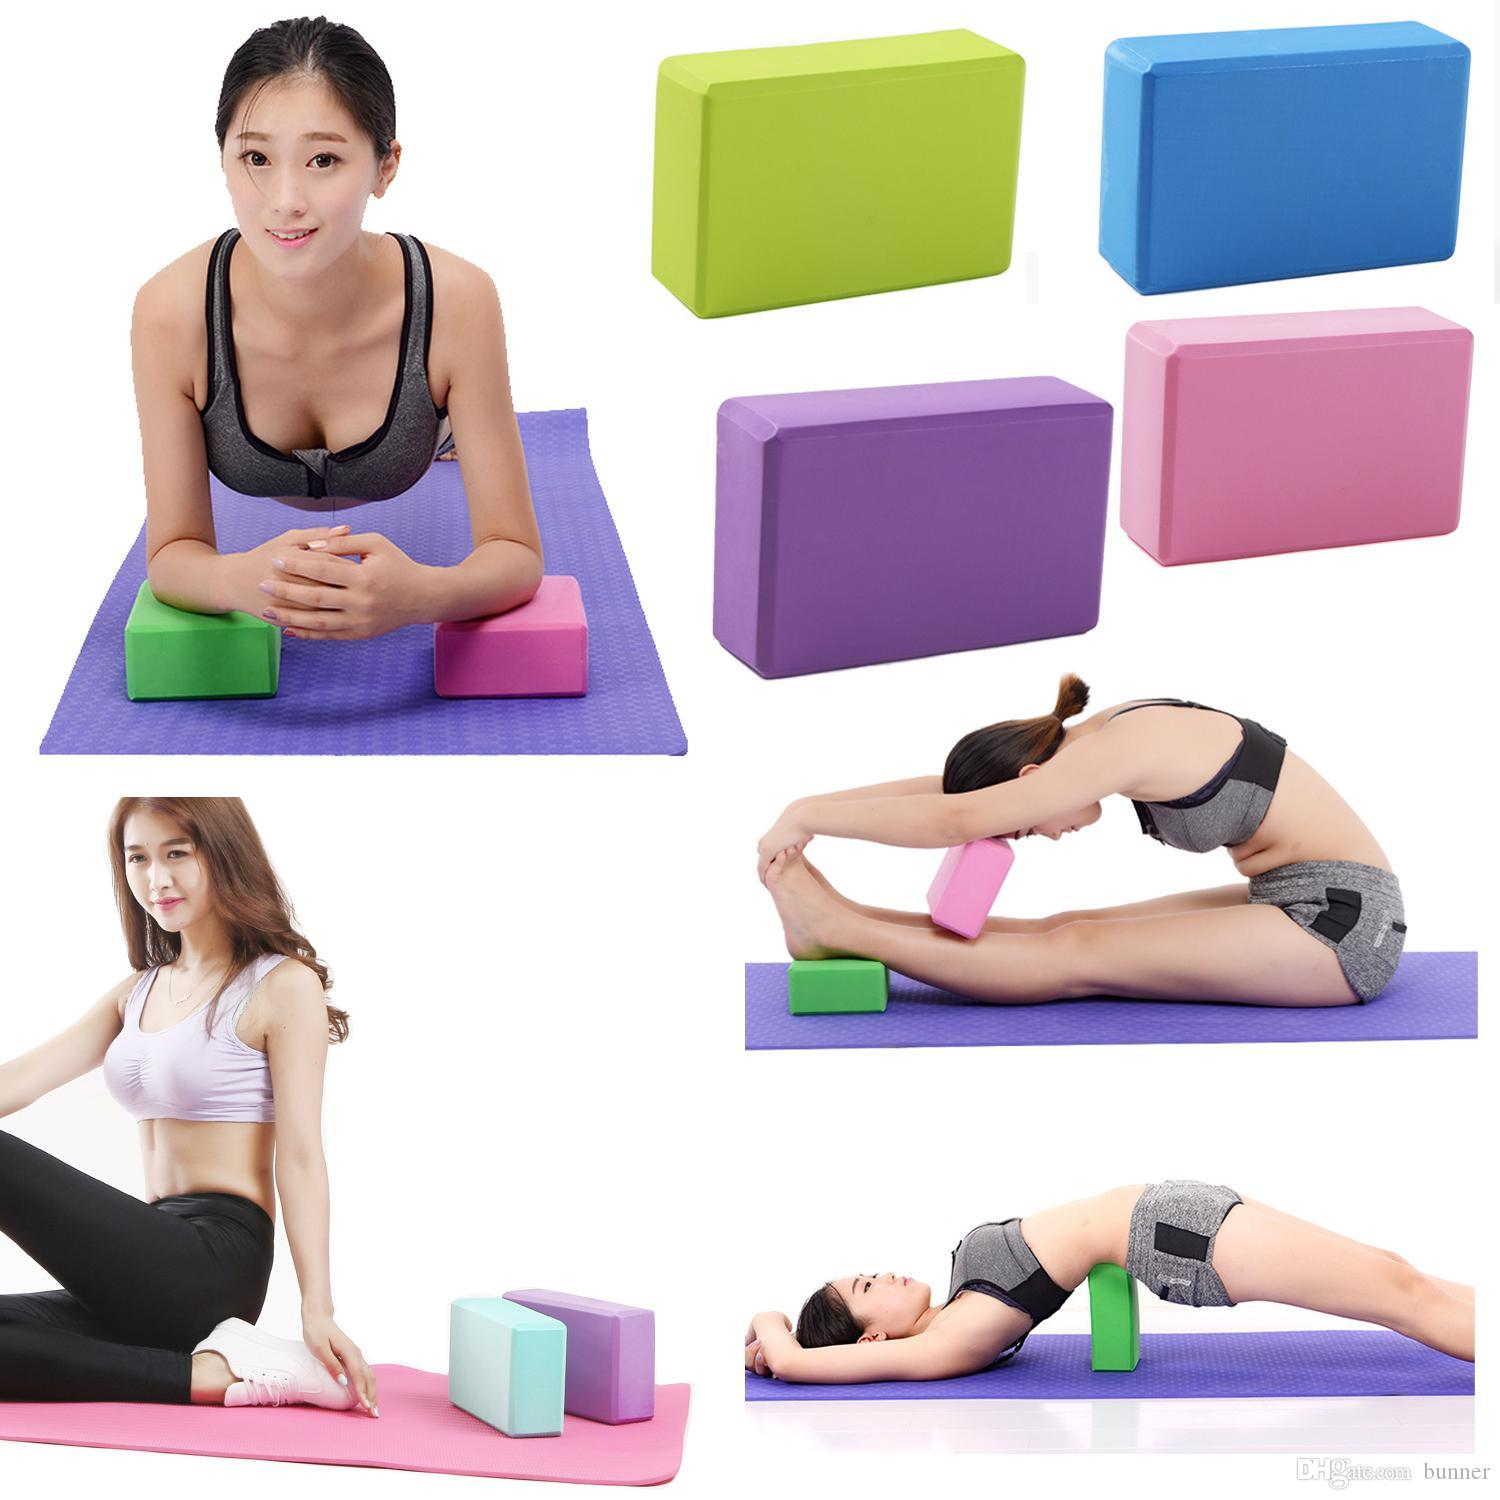 Fitness & Jogging Yoga Block Brick Foaming Foam Home Exercise Practice Fitness Sport Tool New RE